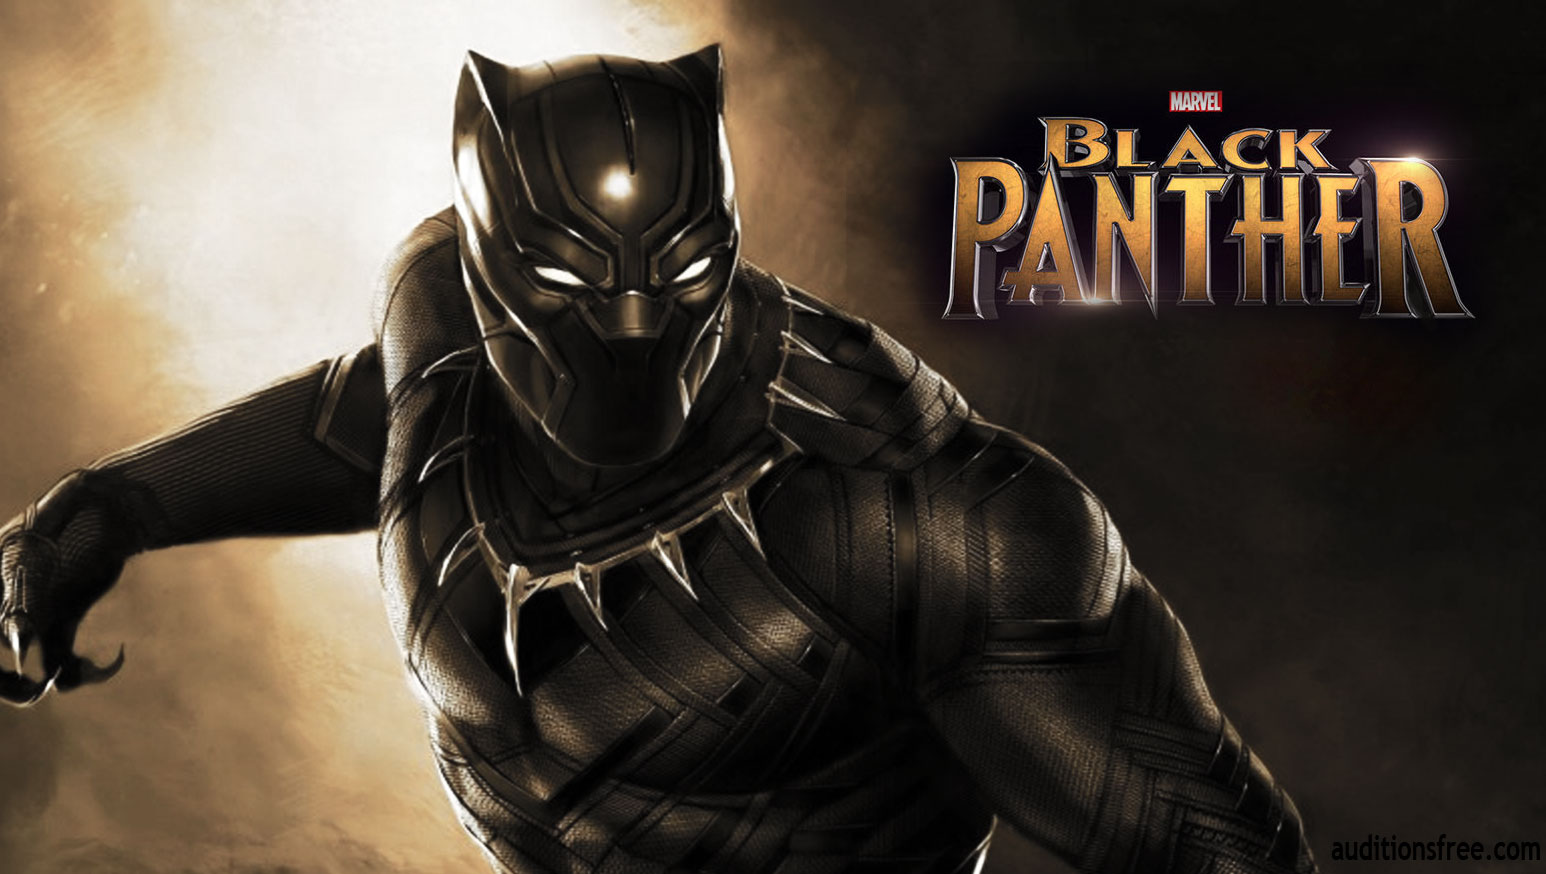 an essay on african americans and the black panther With black panther, black artists were provided with the opportunity and agency to create art that captures the full range of their imaginative possibilities it matters that chadwick boseman is the protagonist and is supported by a cast of nearly all black characters.